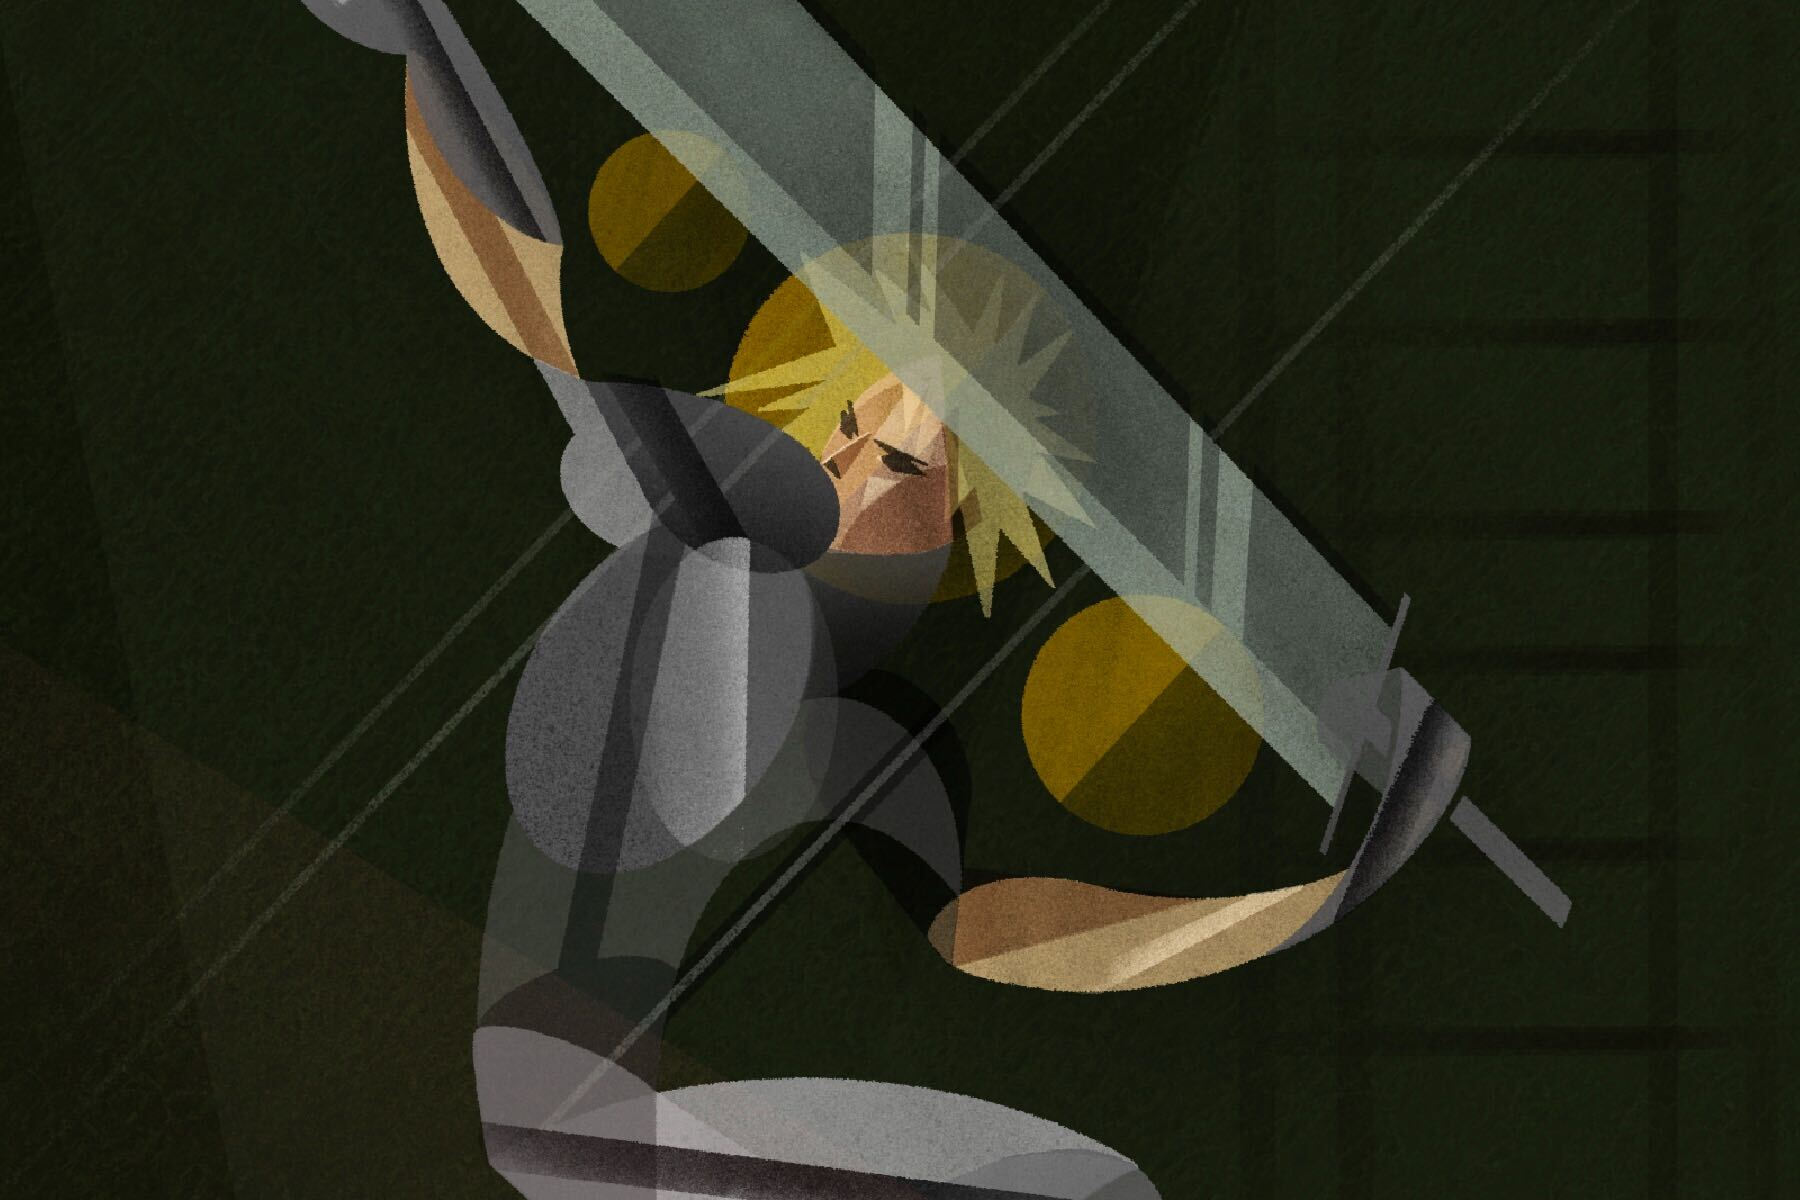 Illustration of Final Fantasy VII